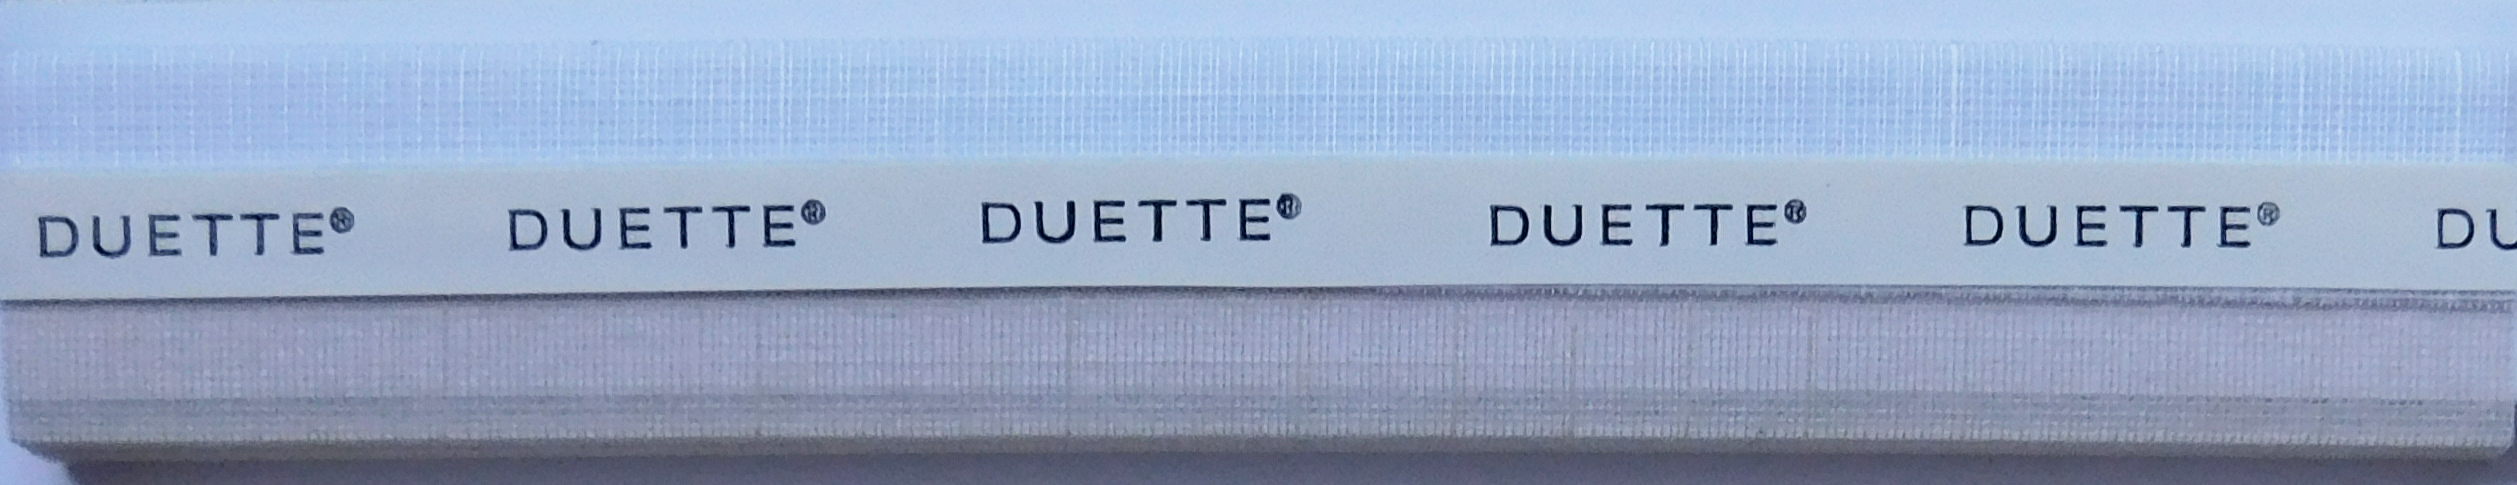 Batiste Oyster Duette Blind Sample Fabric